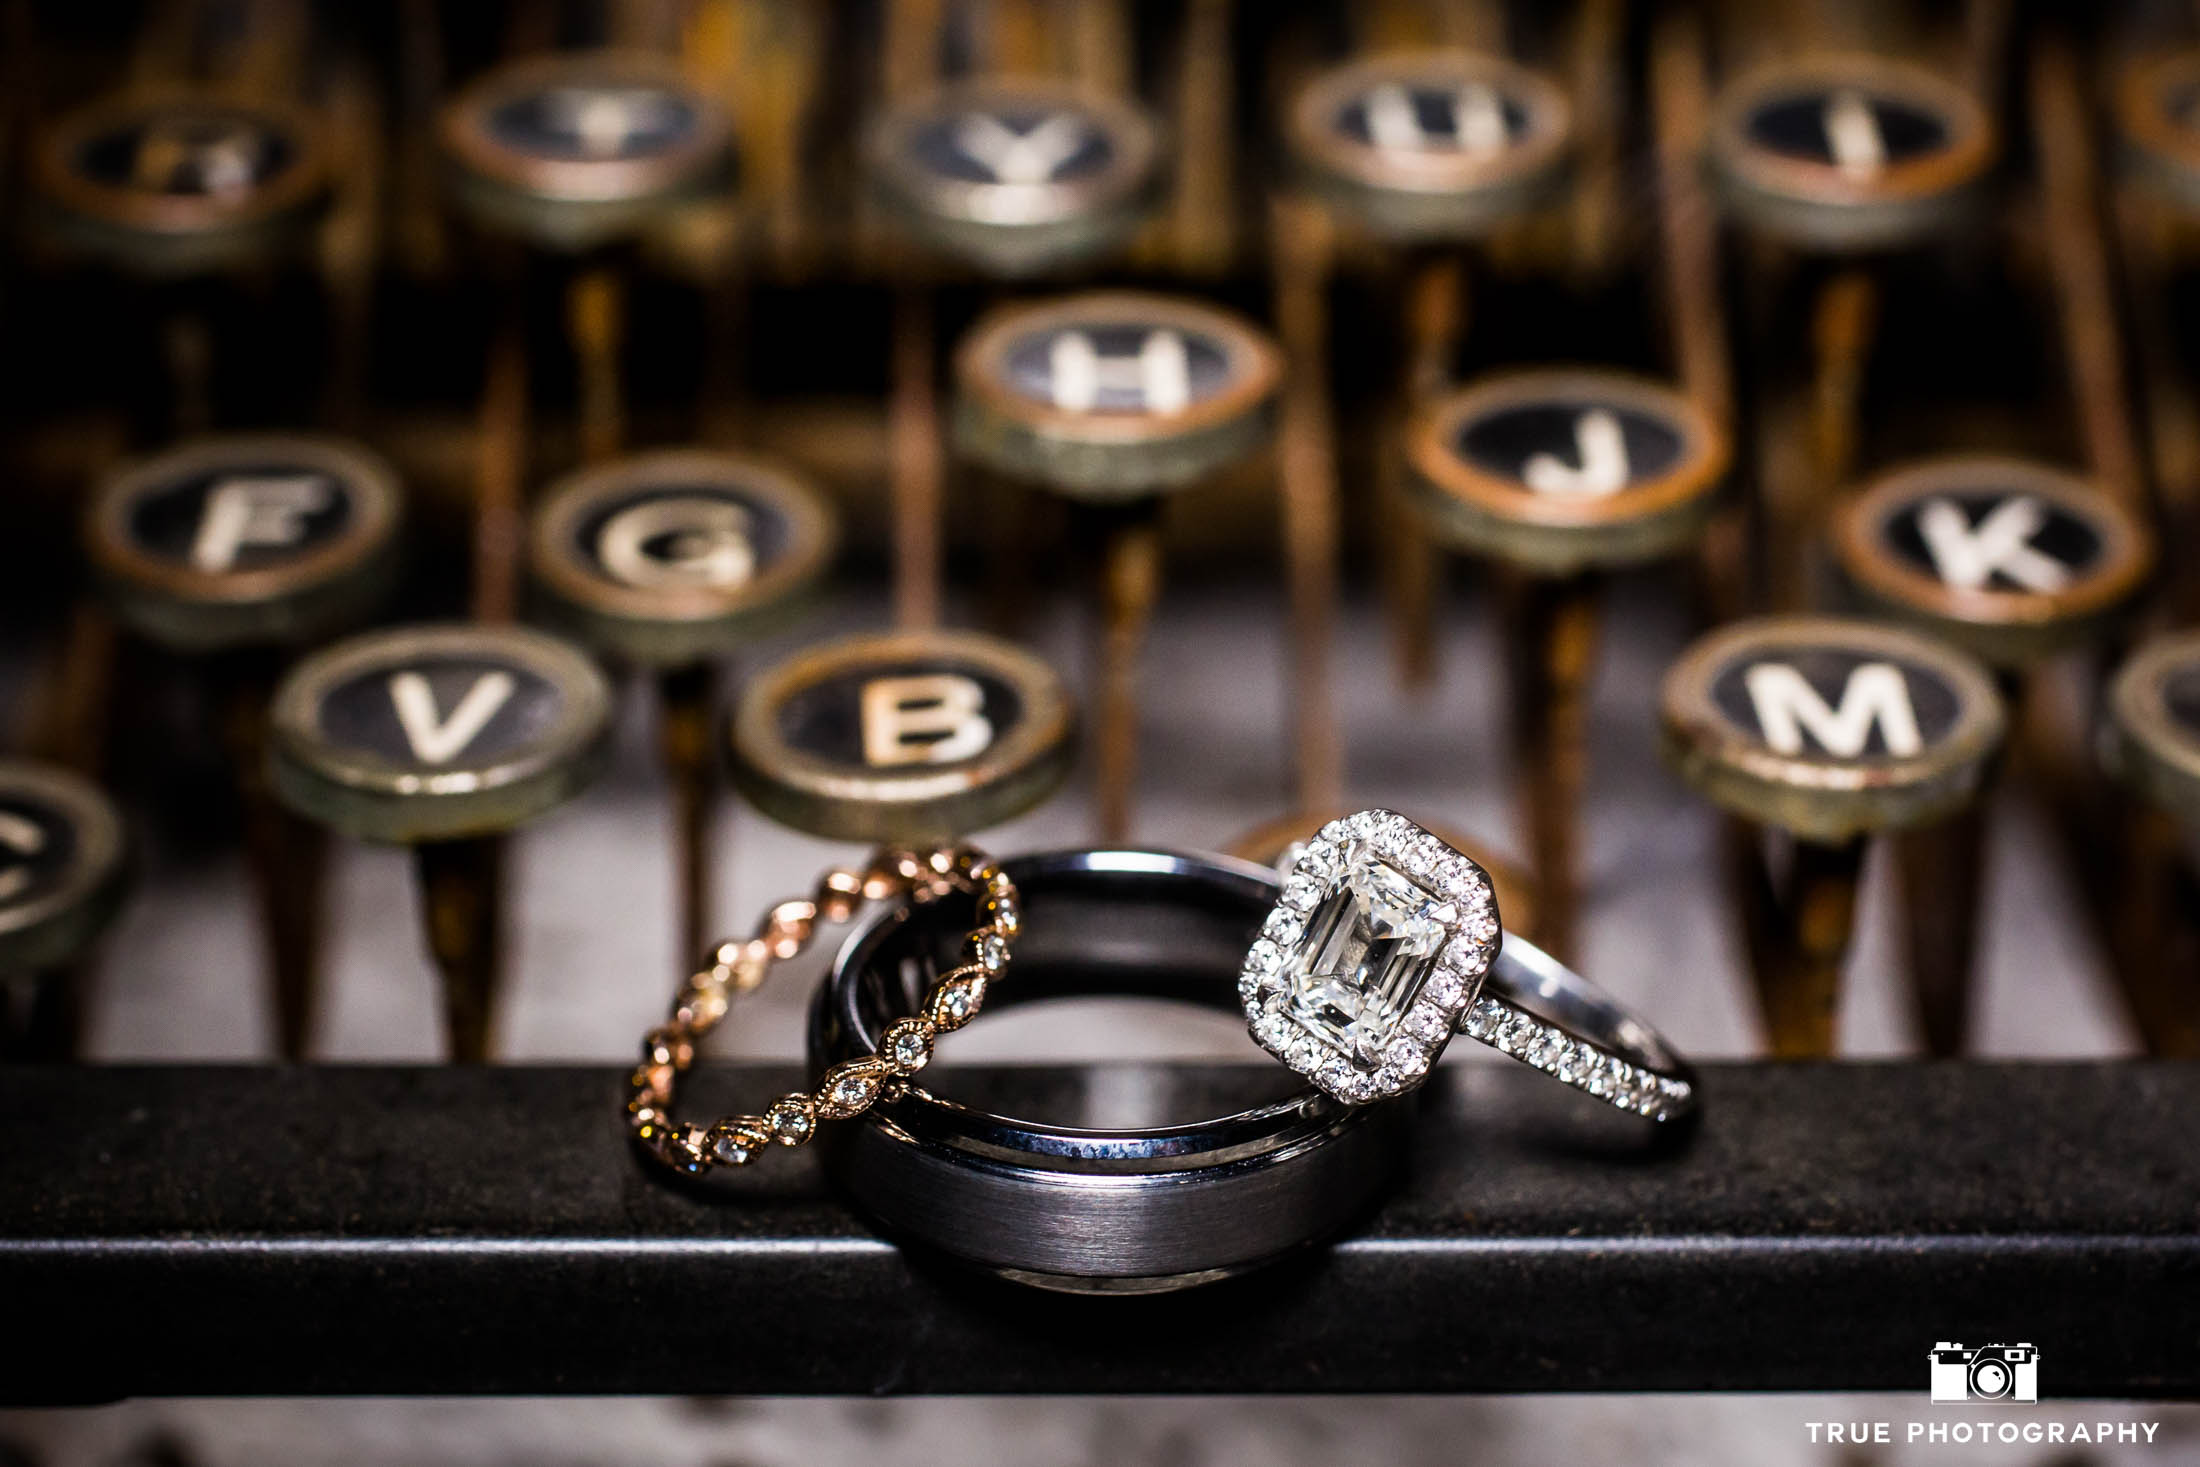 Bride and Groom's ornate diamond rings placed on vintage typewriter at rustic ranch wedding